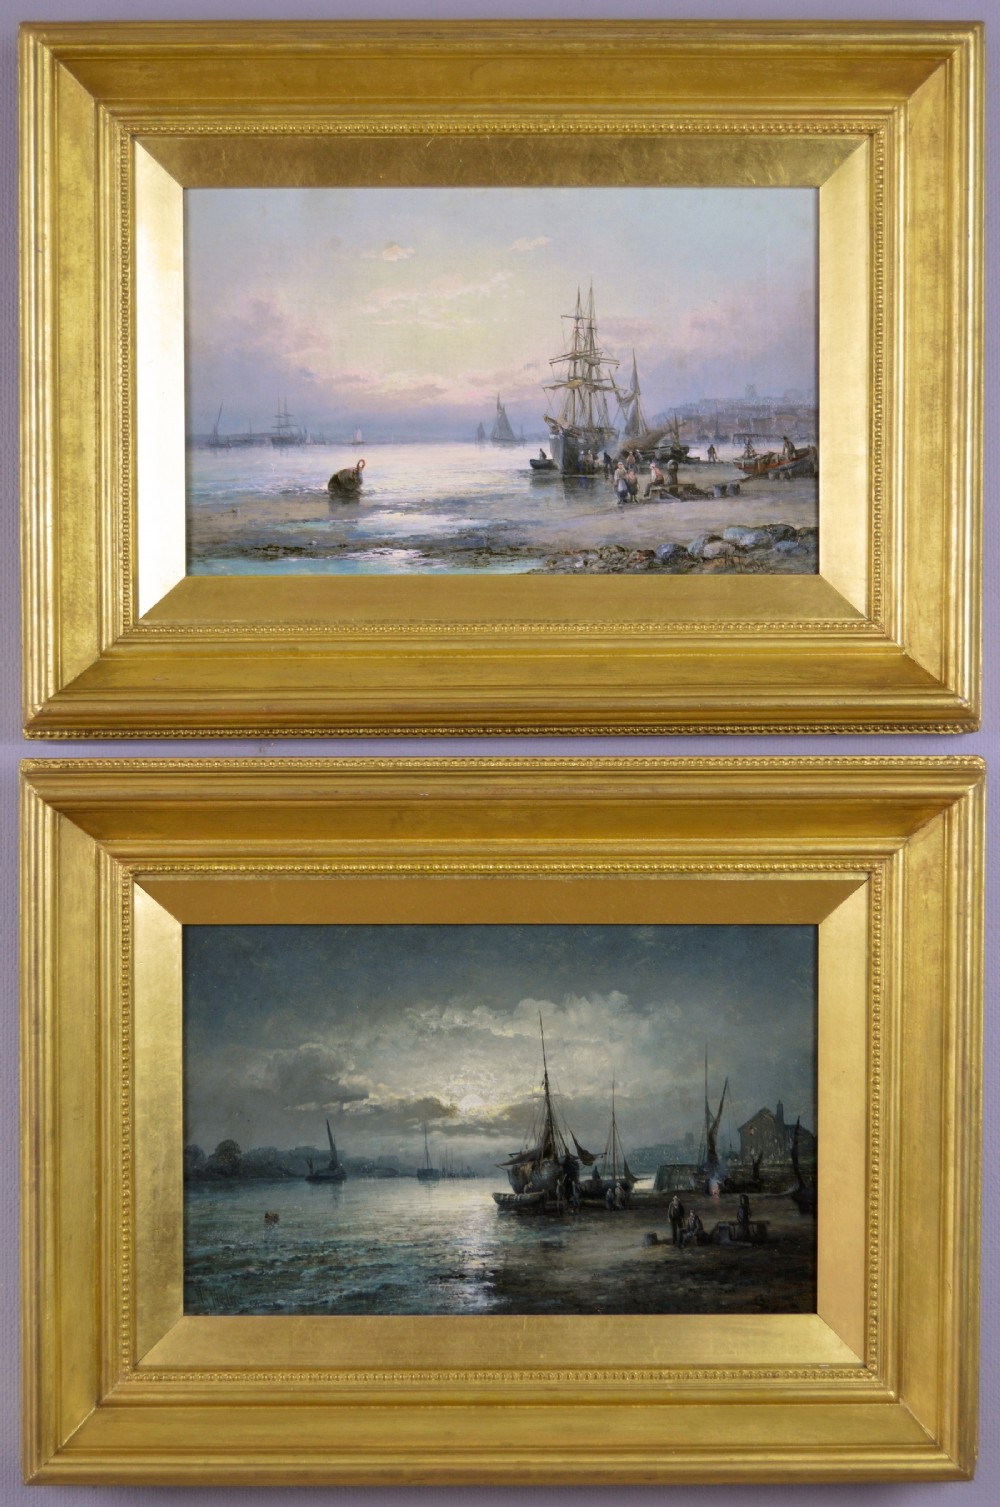 pair of seascape oil paintings of fishing boats off a shore by william anson thornberry